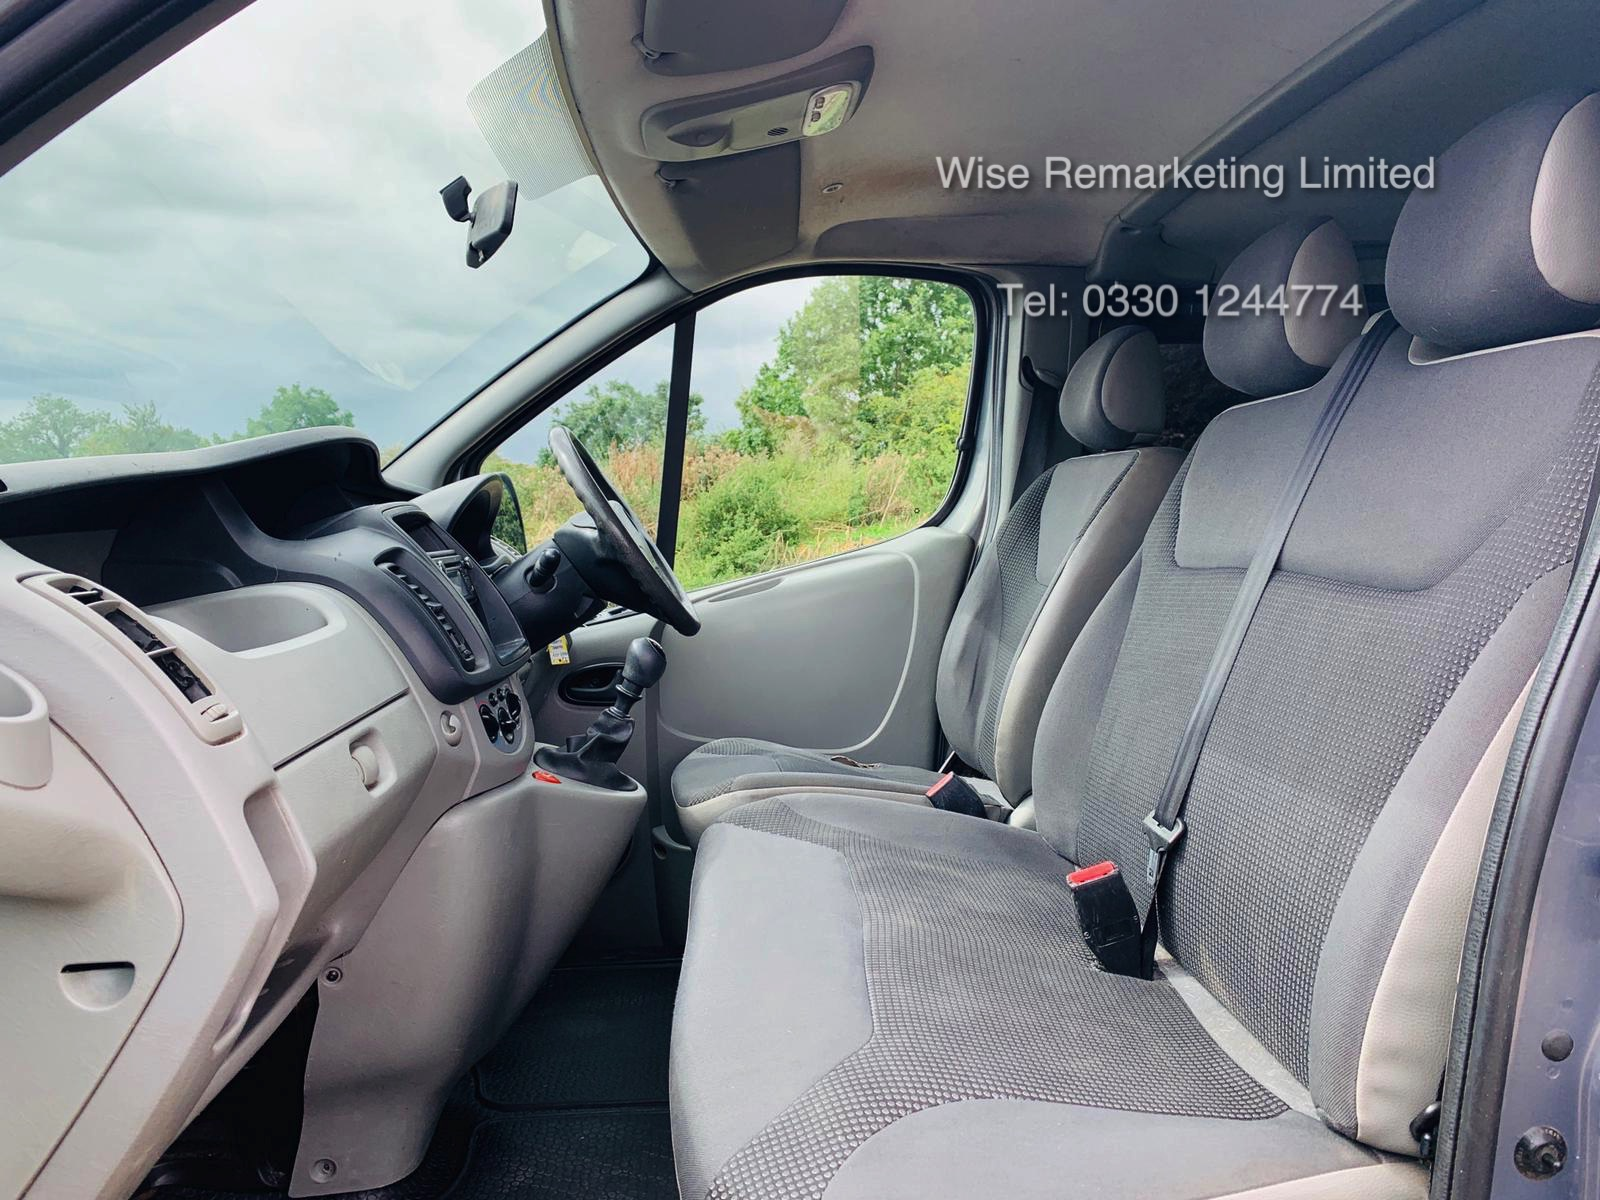 Vauxhall Vivaro 2.0 CDTI 2900 Minibus - 2014 Model - Wheel Chair Access -1 Owner From New -History - Image 13 of 21